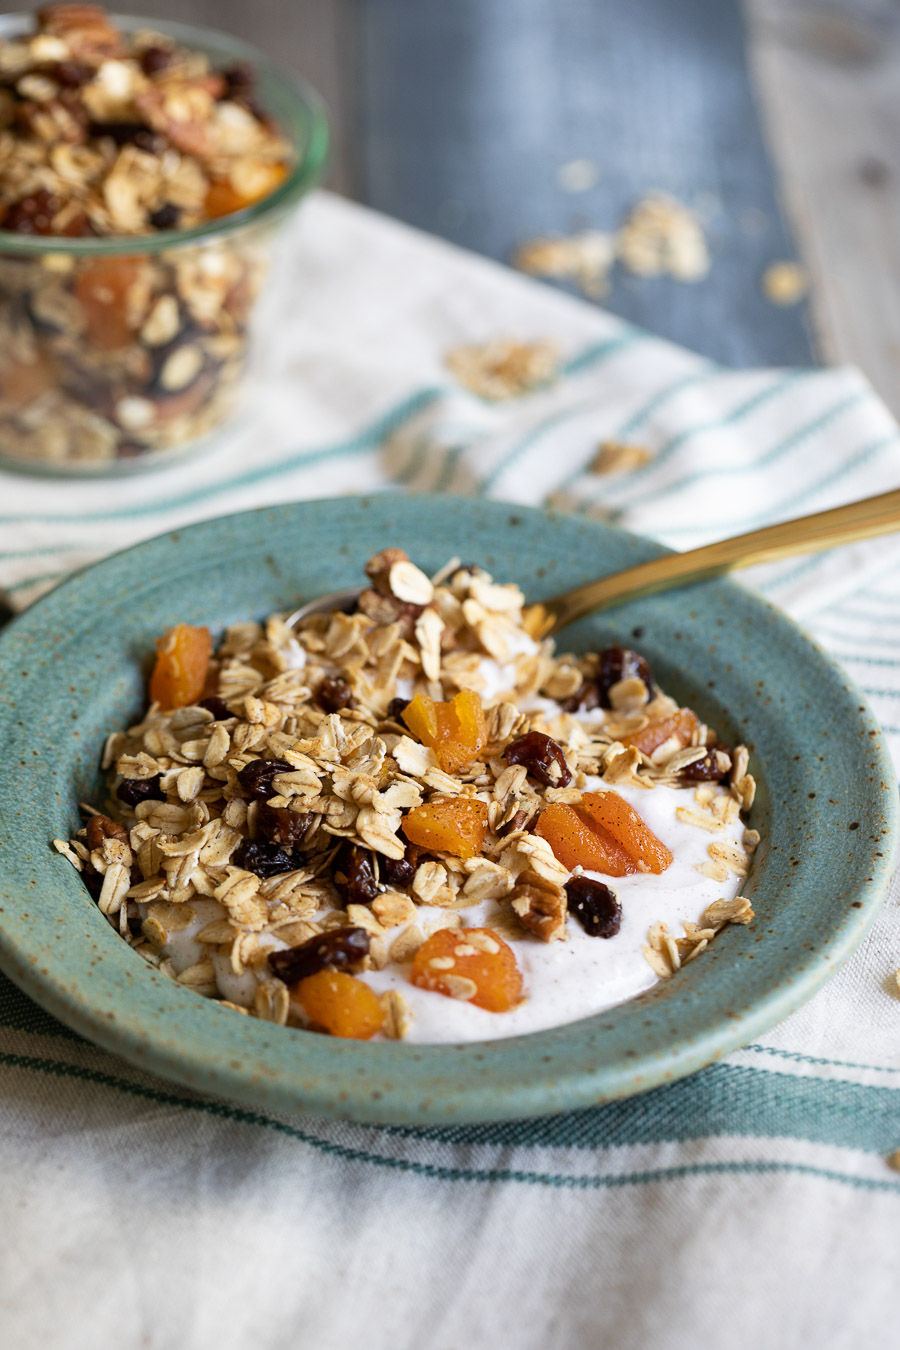 Toasted Muesli with Yogurt